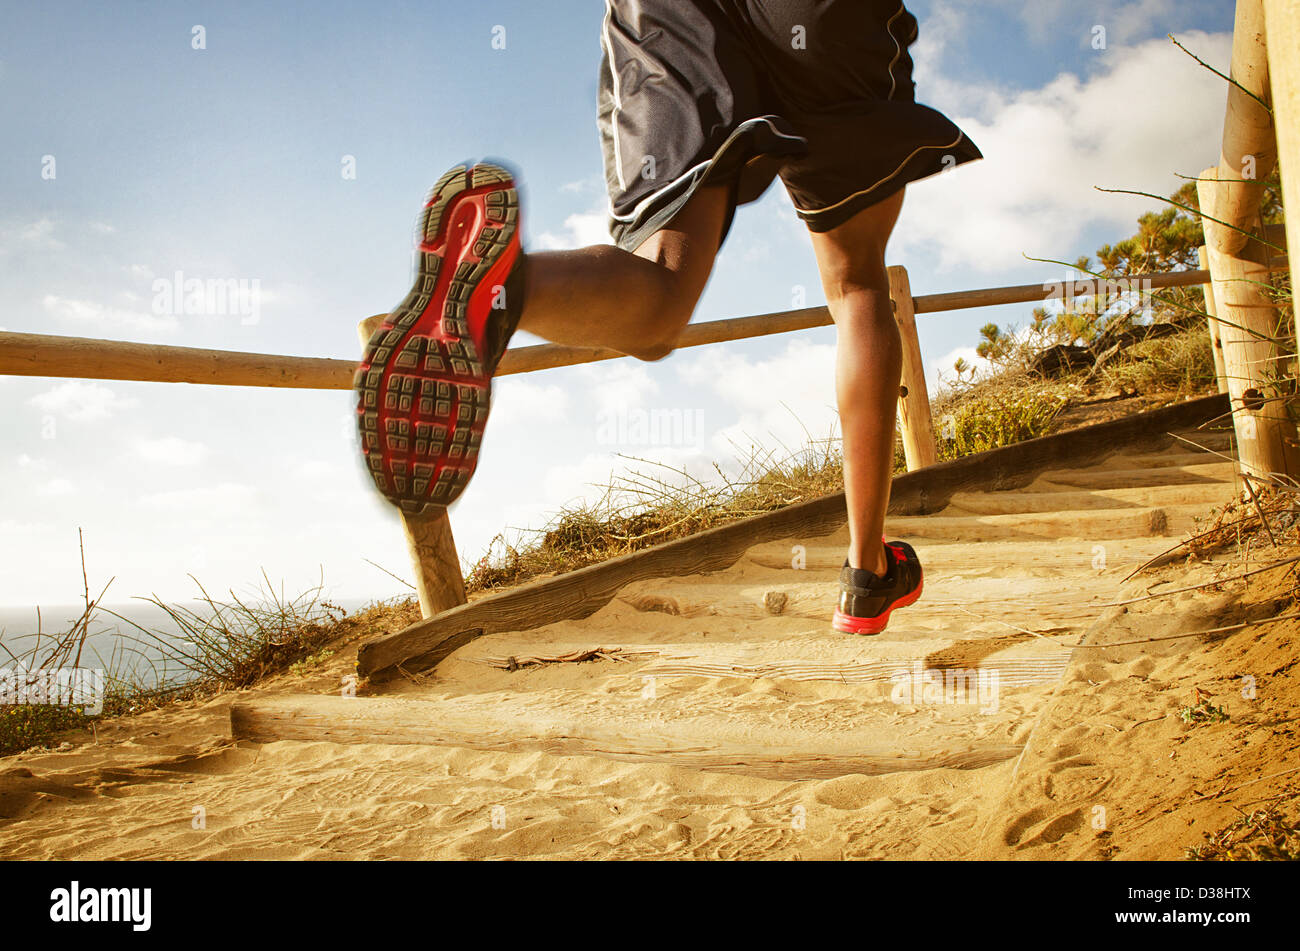 Man running on dirt path - Stock Image